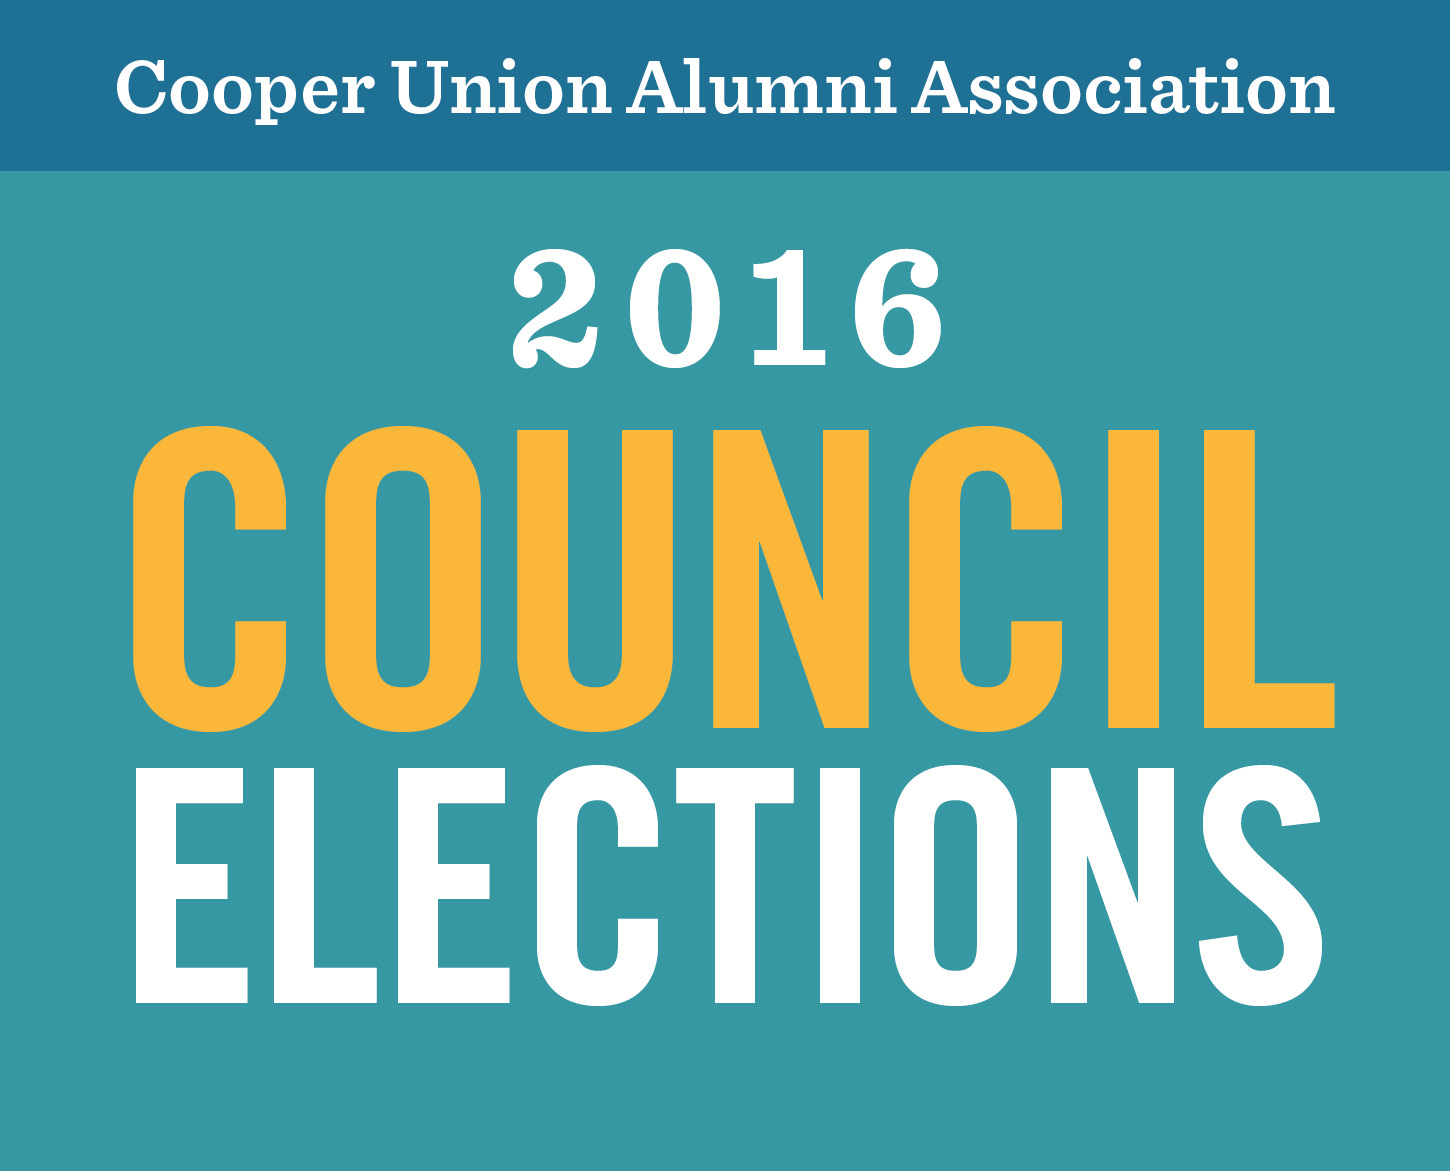 Category Elections  >> Cooper Union Alumni Association Category Election Page 2